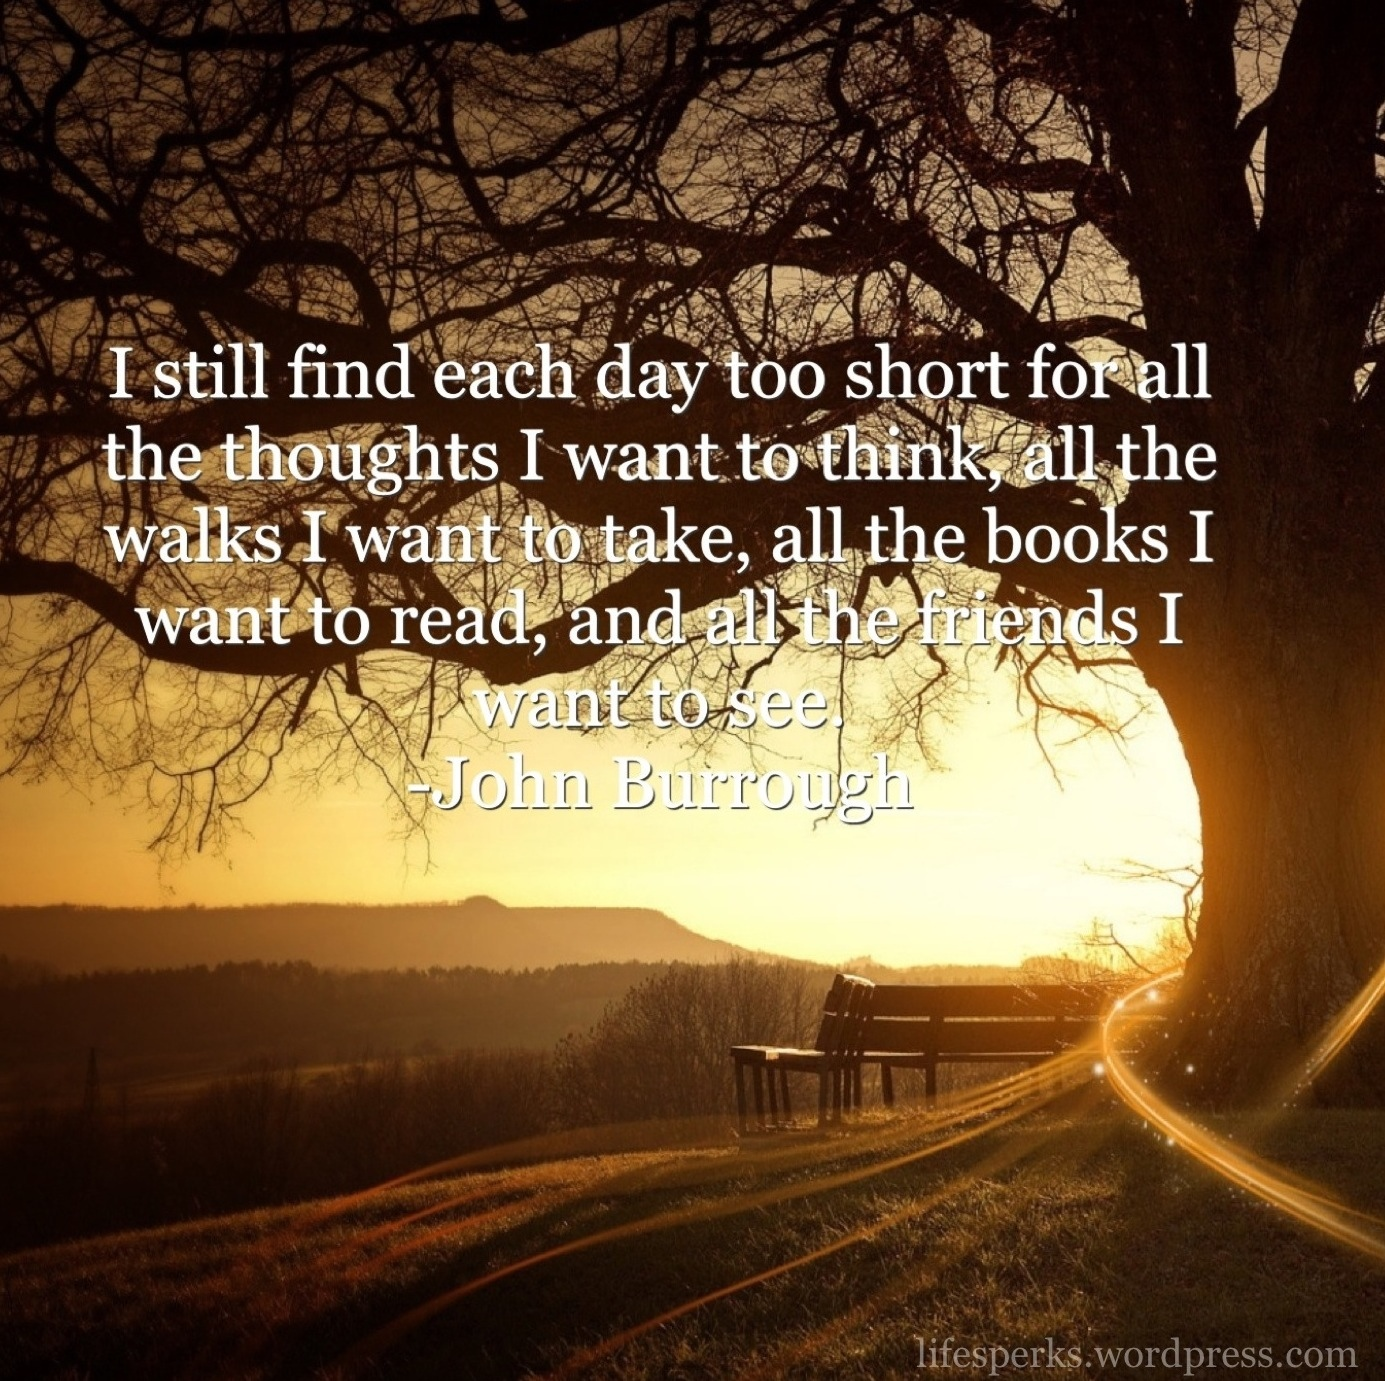 i still find each day too short for all the thought i want